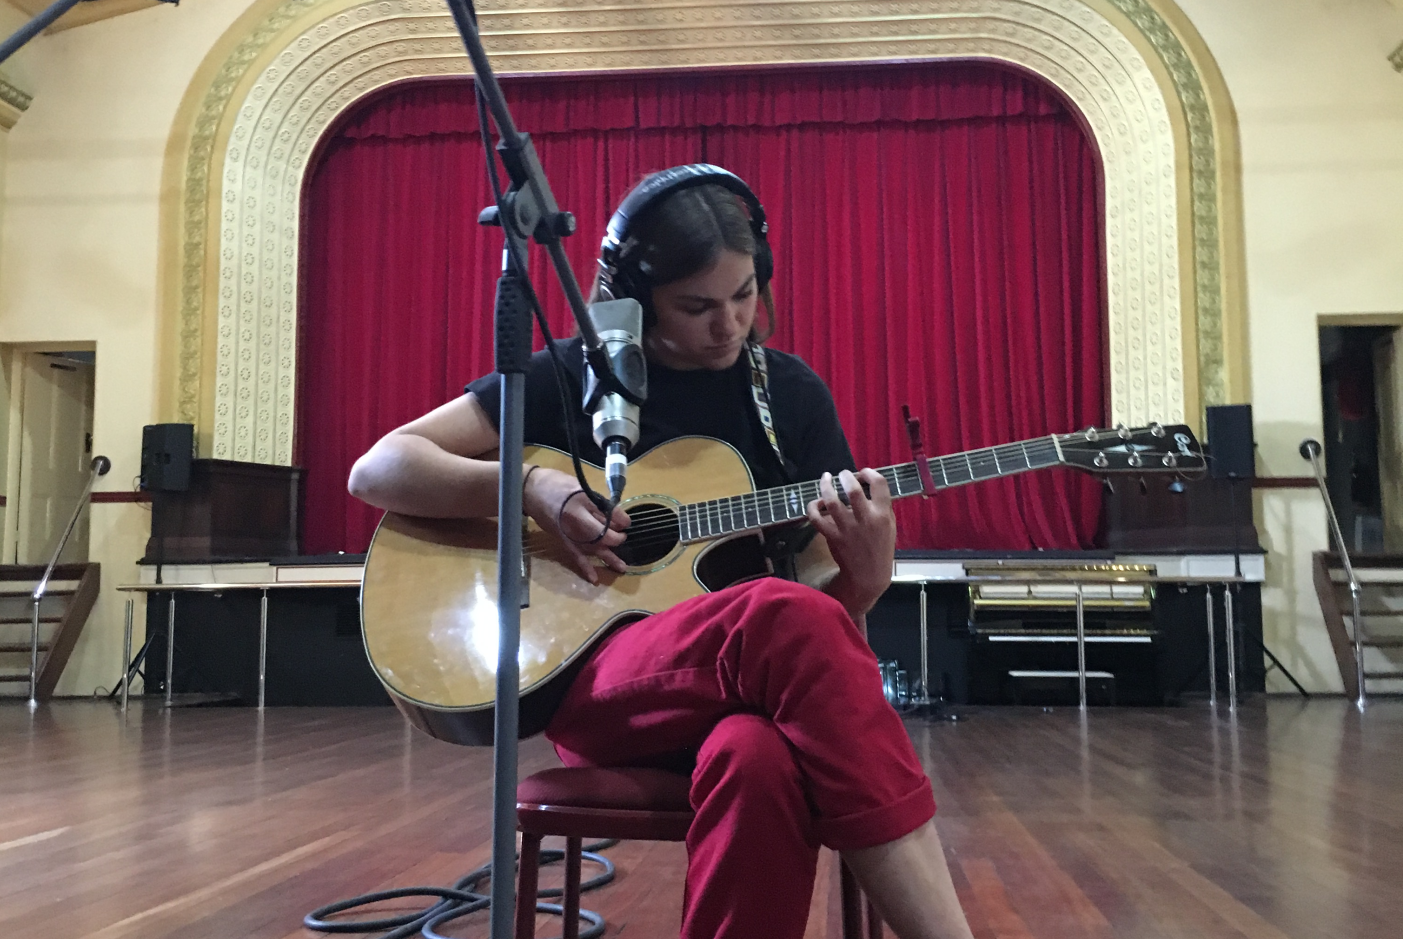 Georgia McAlpine (Demos from The Wheatbelt artist from Buntine), photographed at The Cummins Theatre